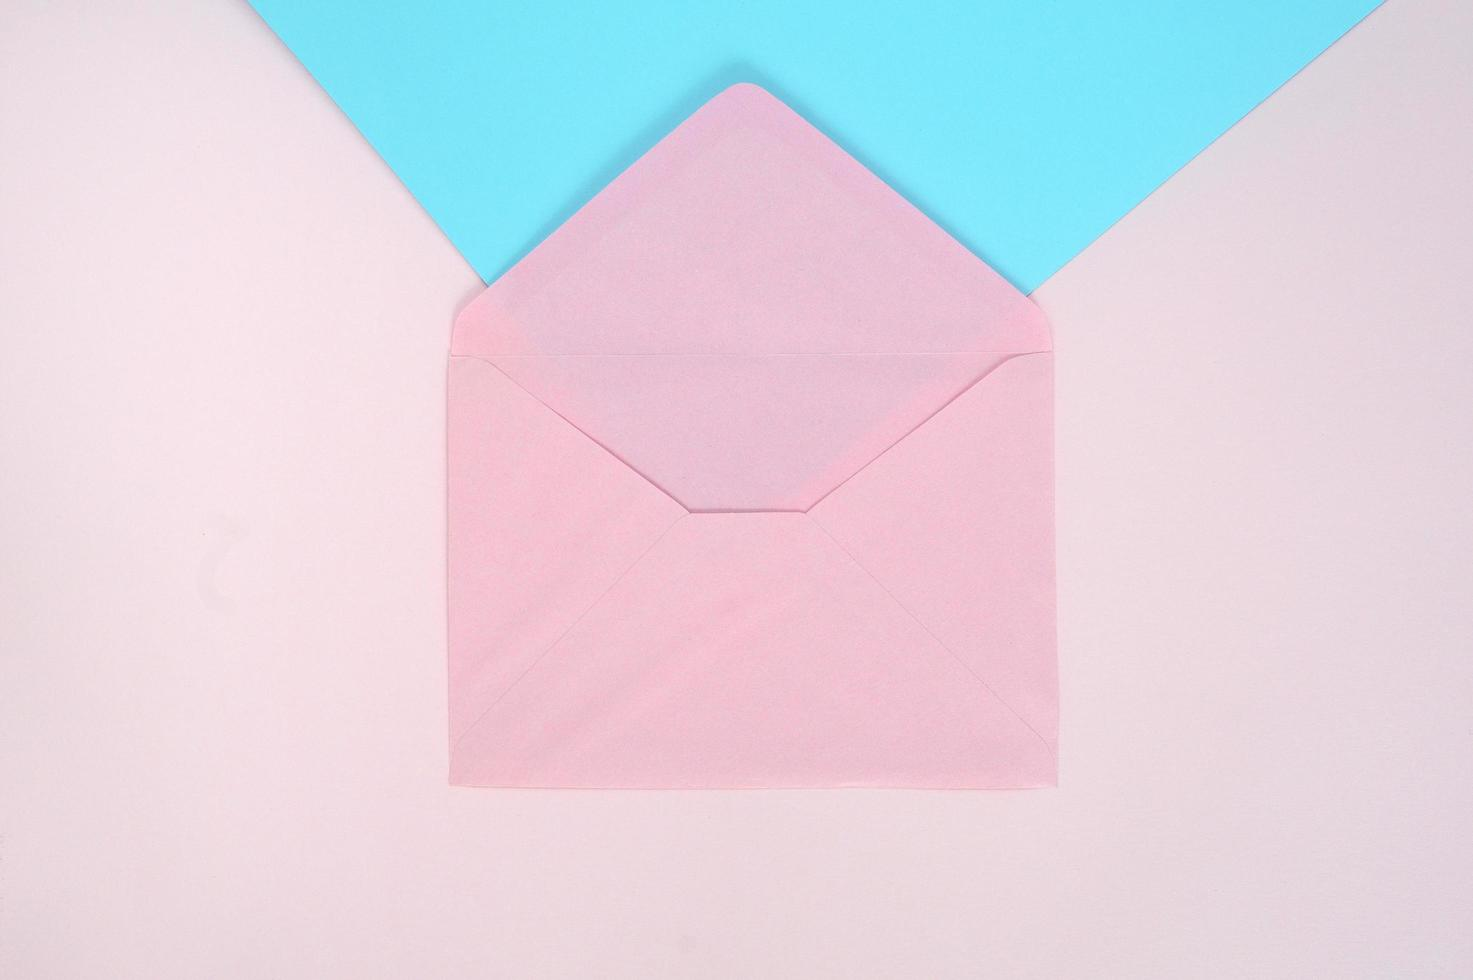 Pink envelope on pink and blue background photo